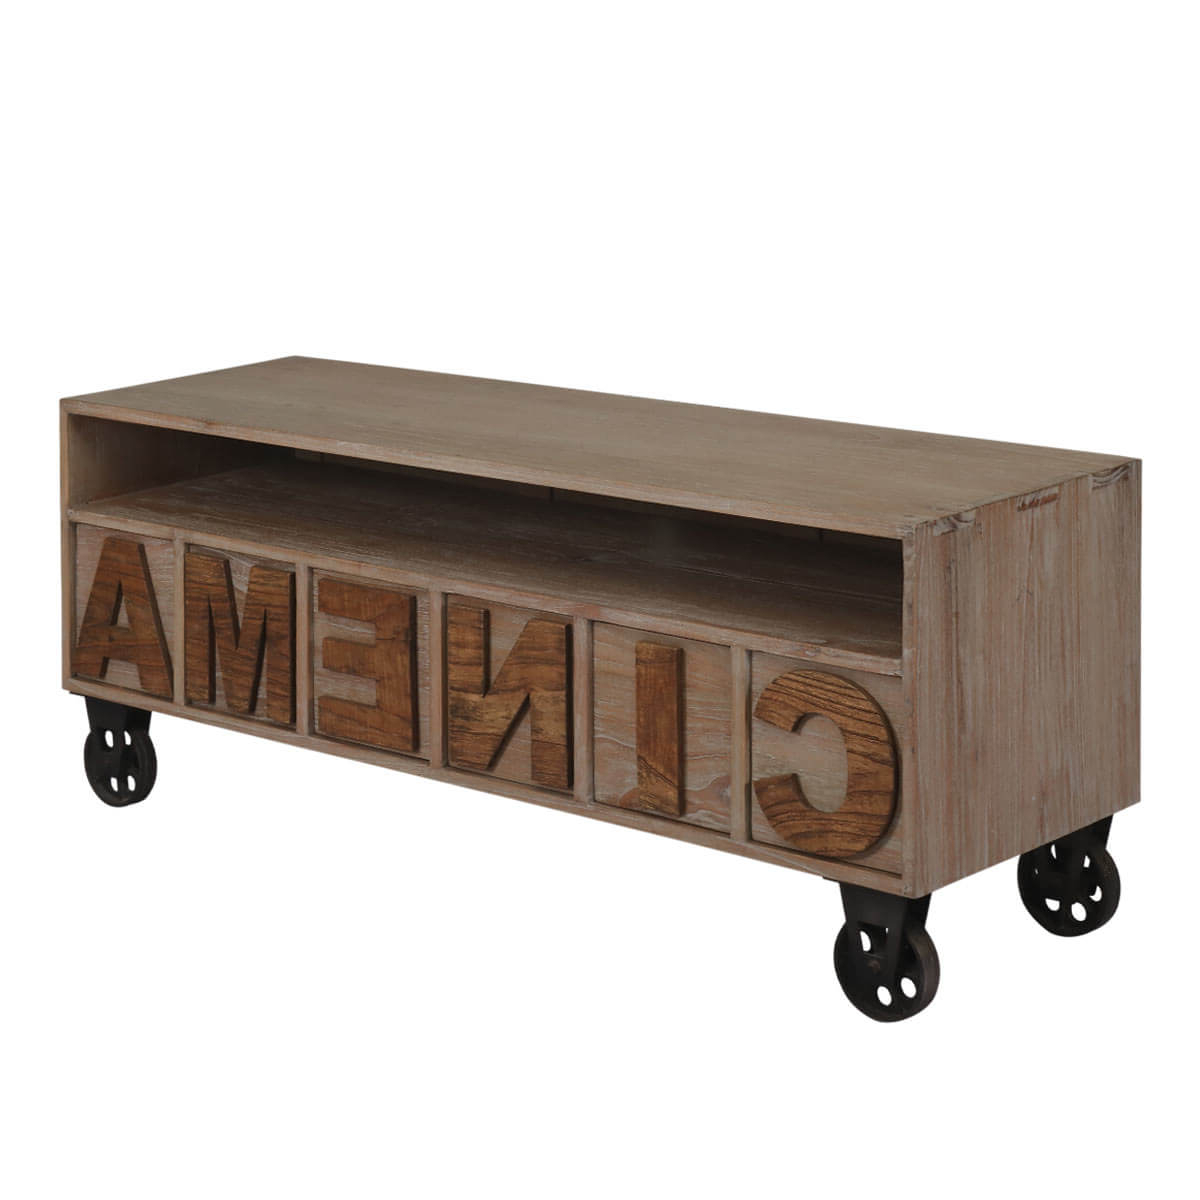 Widely Used Racine Reclaimed Teak Wood 6 Drawer Open Shelf Industrial Tv Stand Throughout Open Shelf Tv Stands (View 20 of 20)